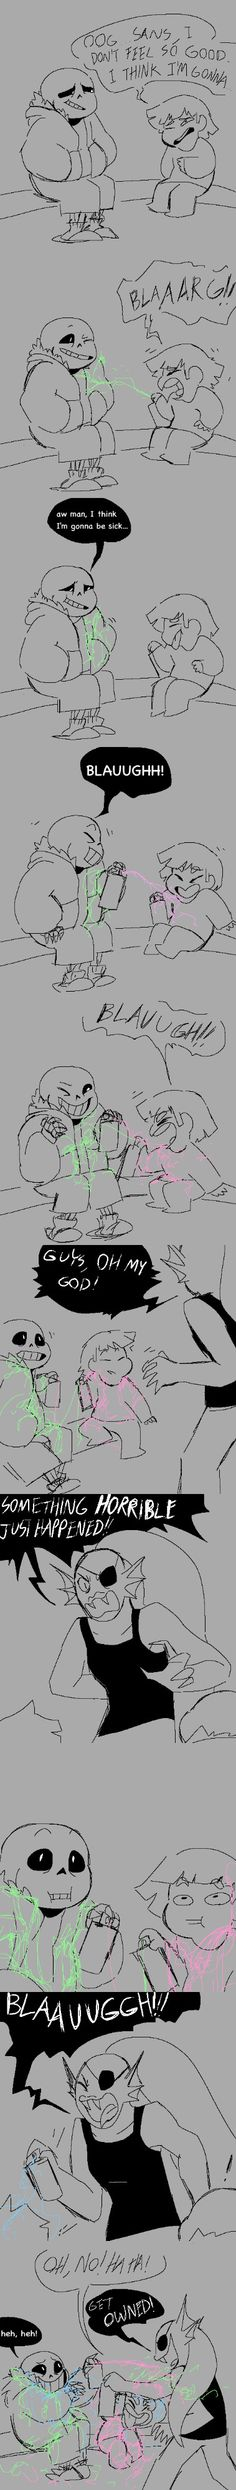 Sans, Frisk, and Undyne - comic